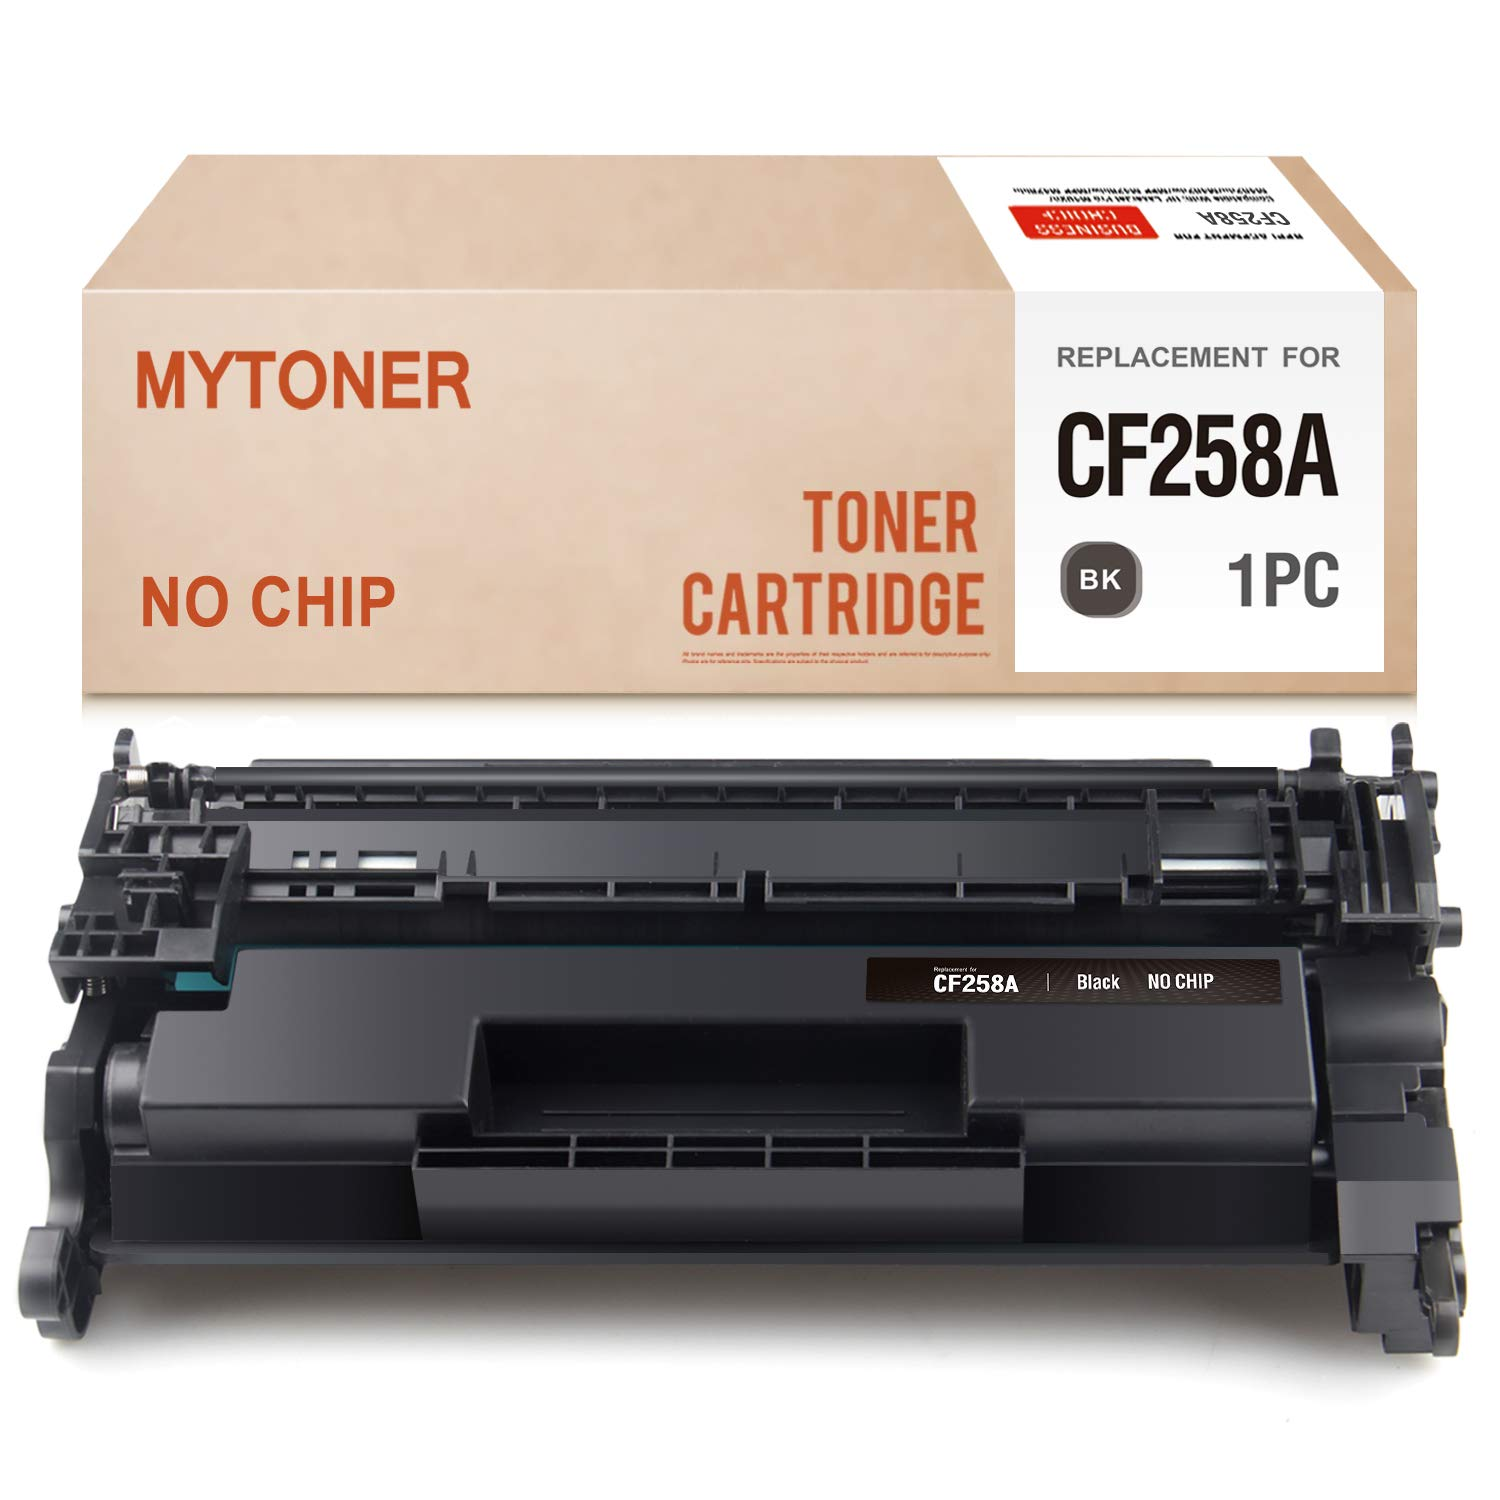 MYTONER (No Chip) Compatible Toner Cartridge Replacement for HP 58A CF258A Toner for Laserjet Pro M304 M404n M404dn M404dw MFP M428fdw M428fdn Printer Series Ink (Black,1-Pack)